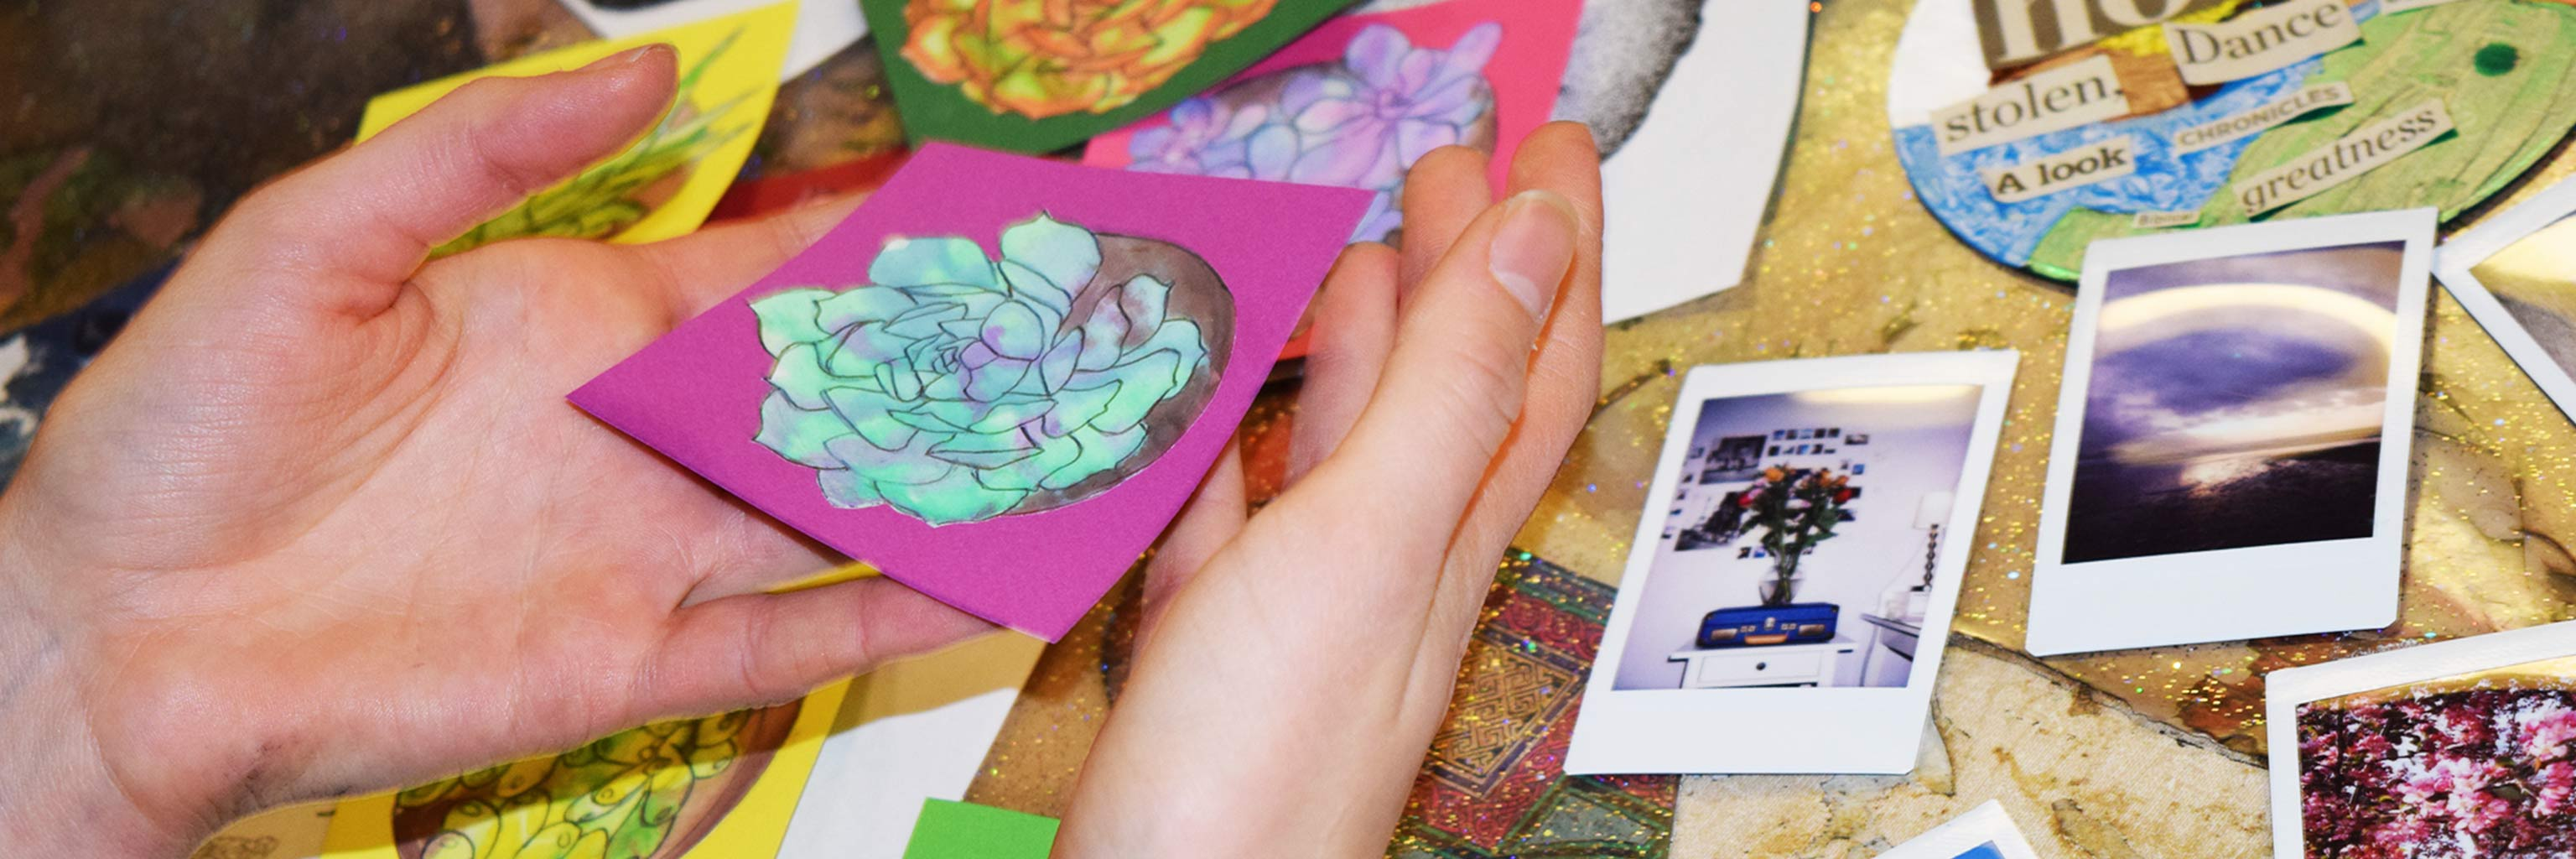 Close up of a pair of hands cradling a small painting of a flower